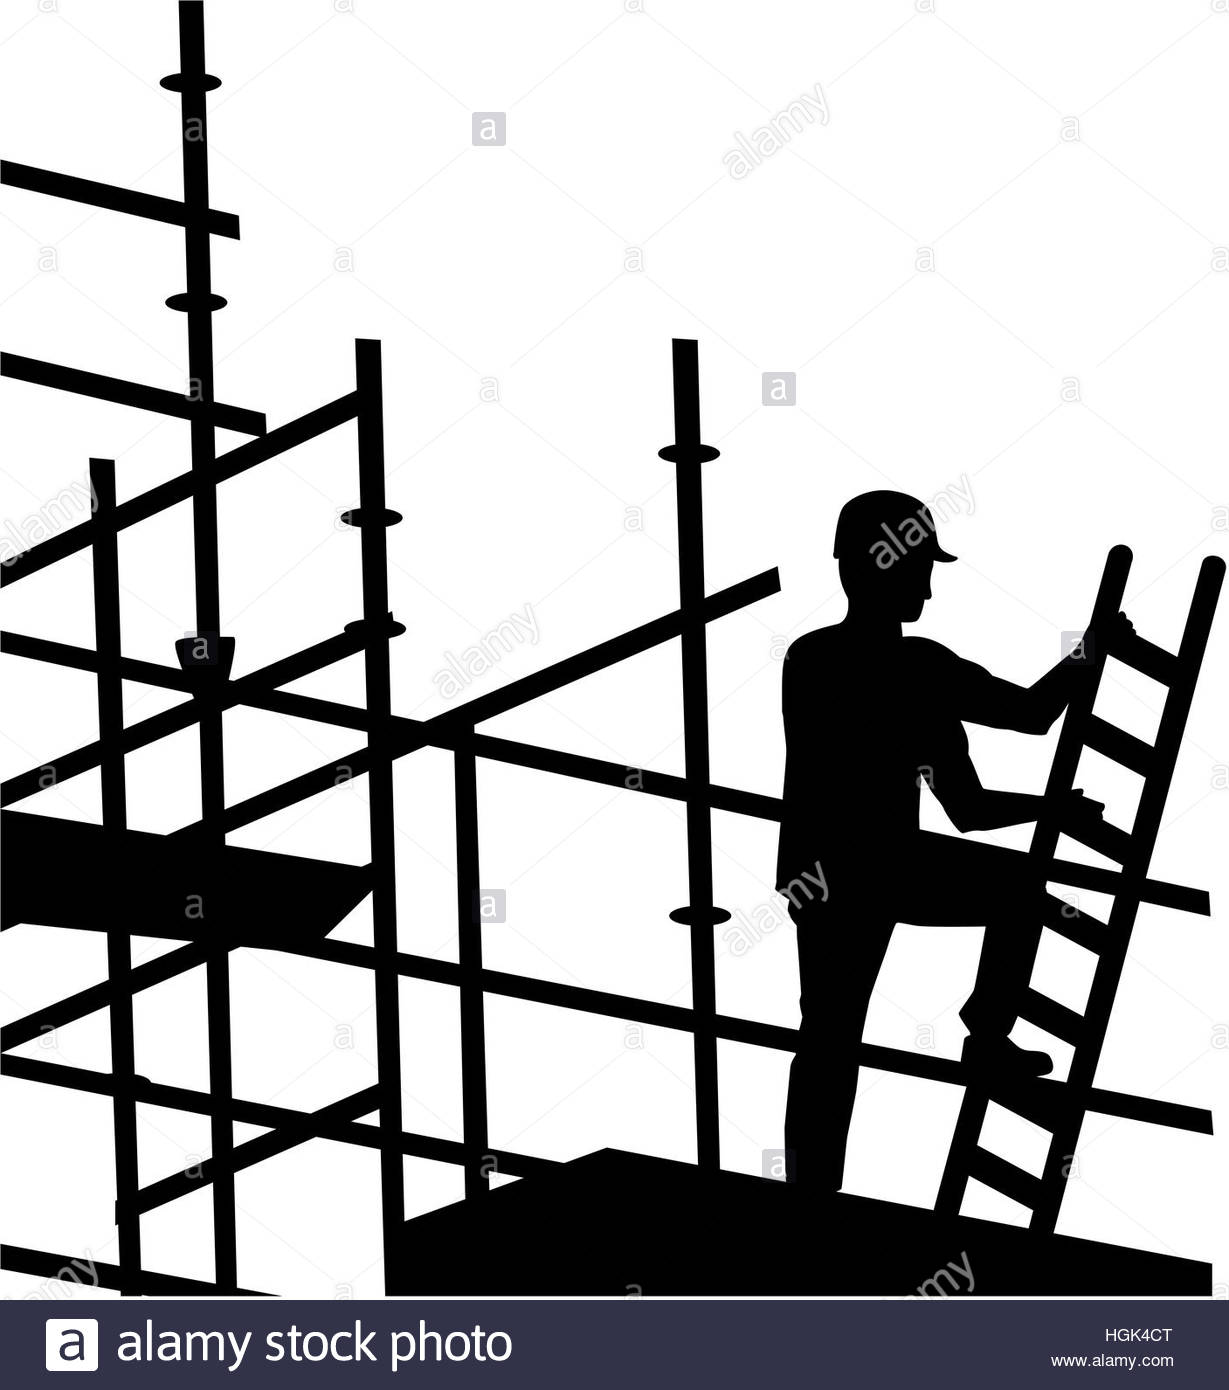 1229x1390 Scaffolder Working On Site Stock Photo, Royalty Free Image